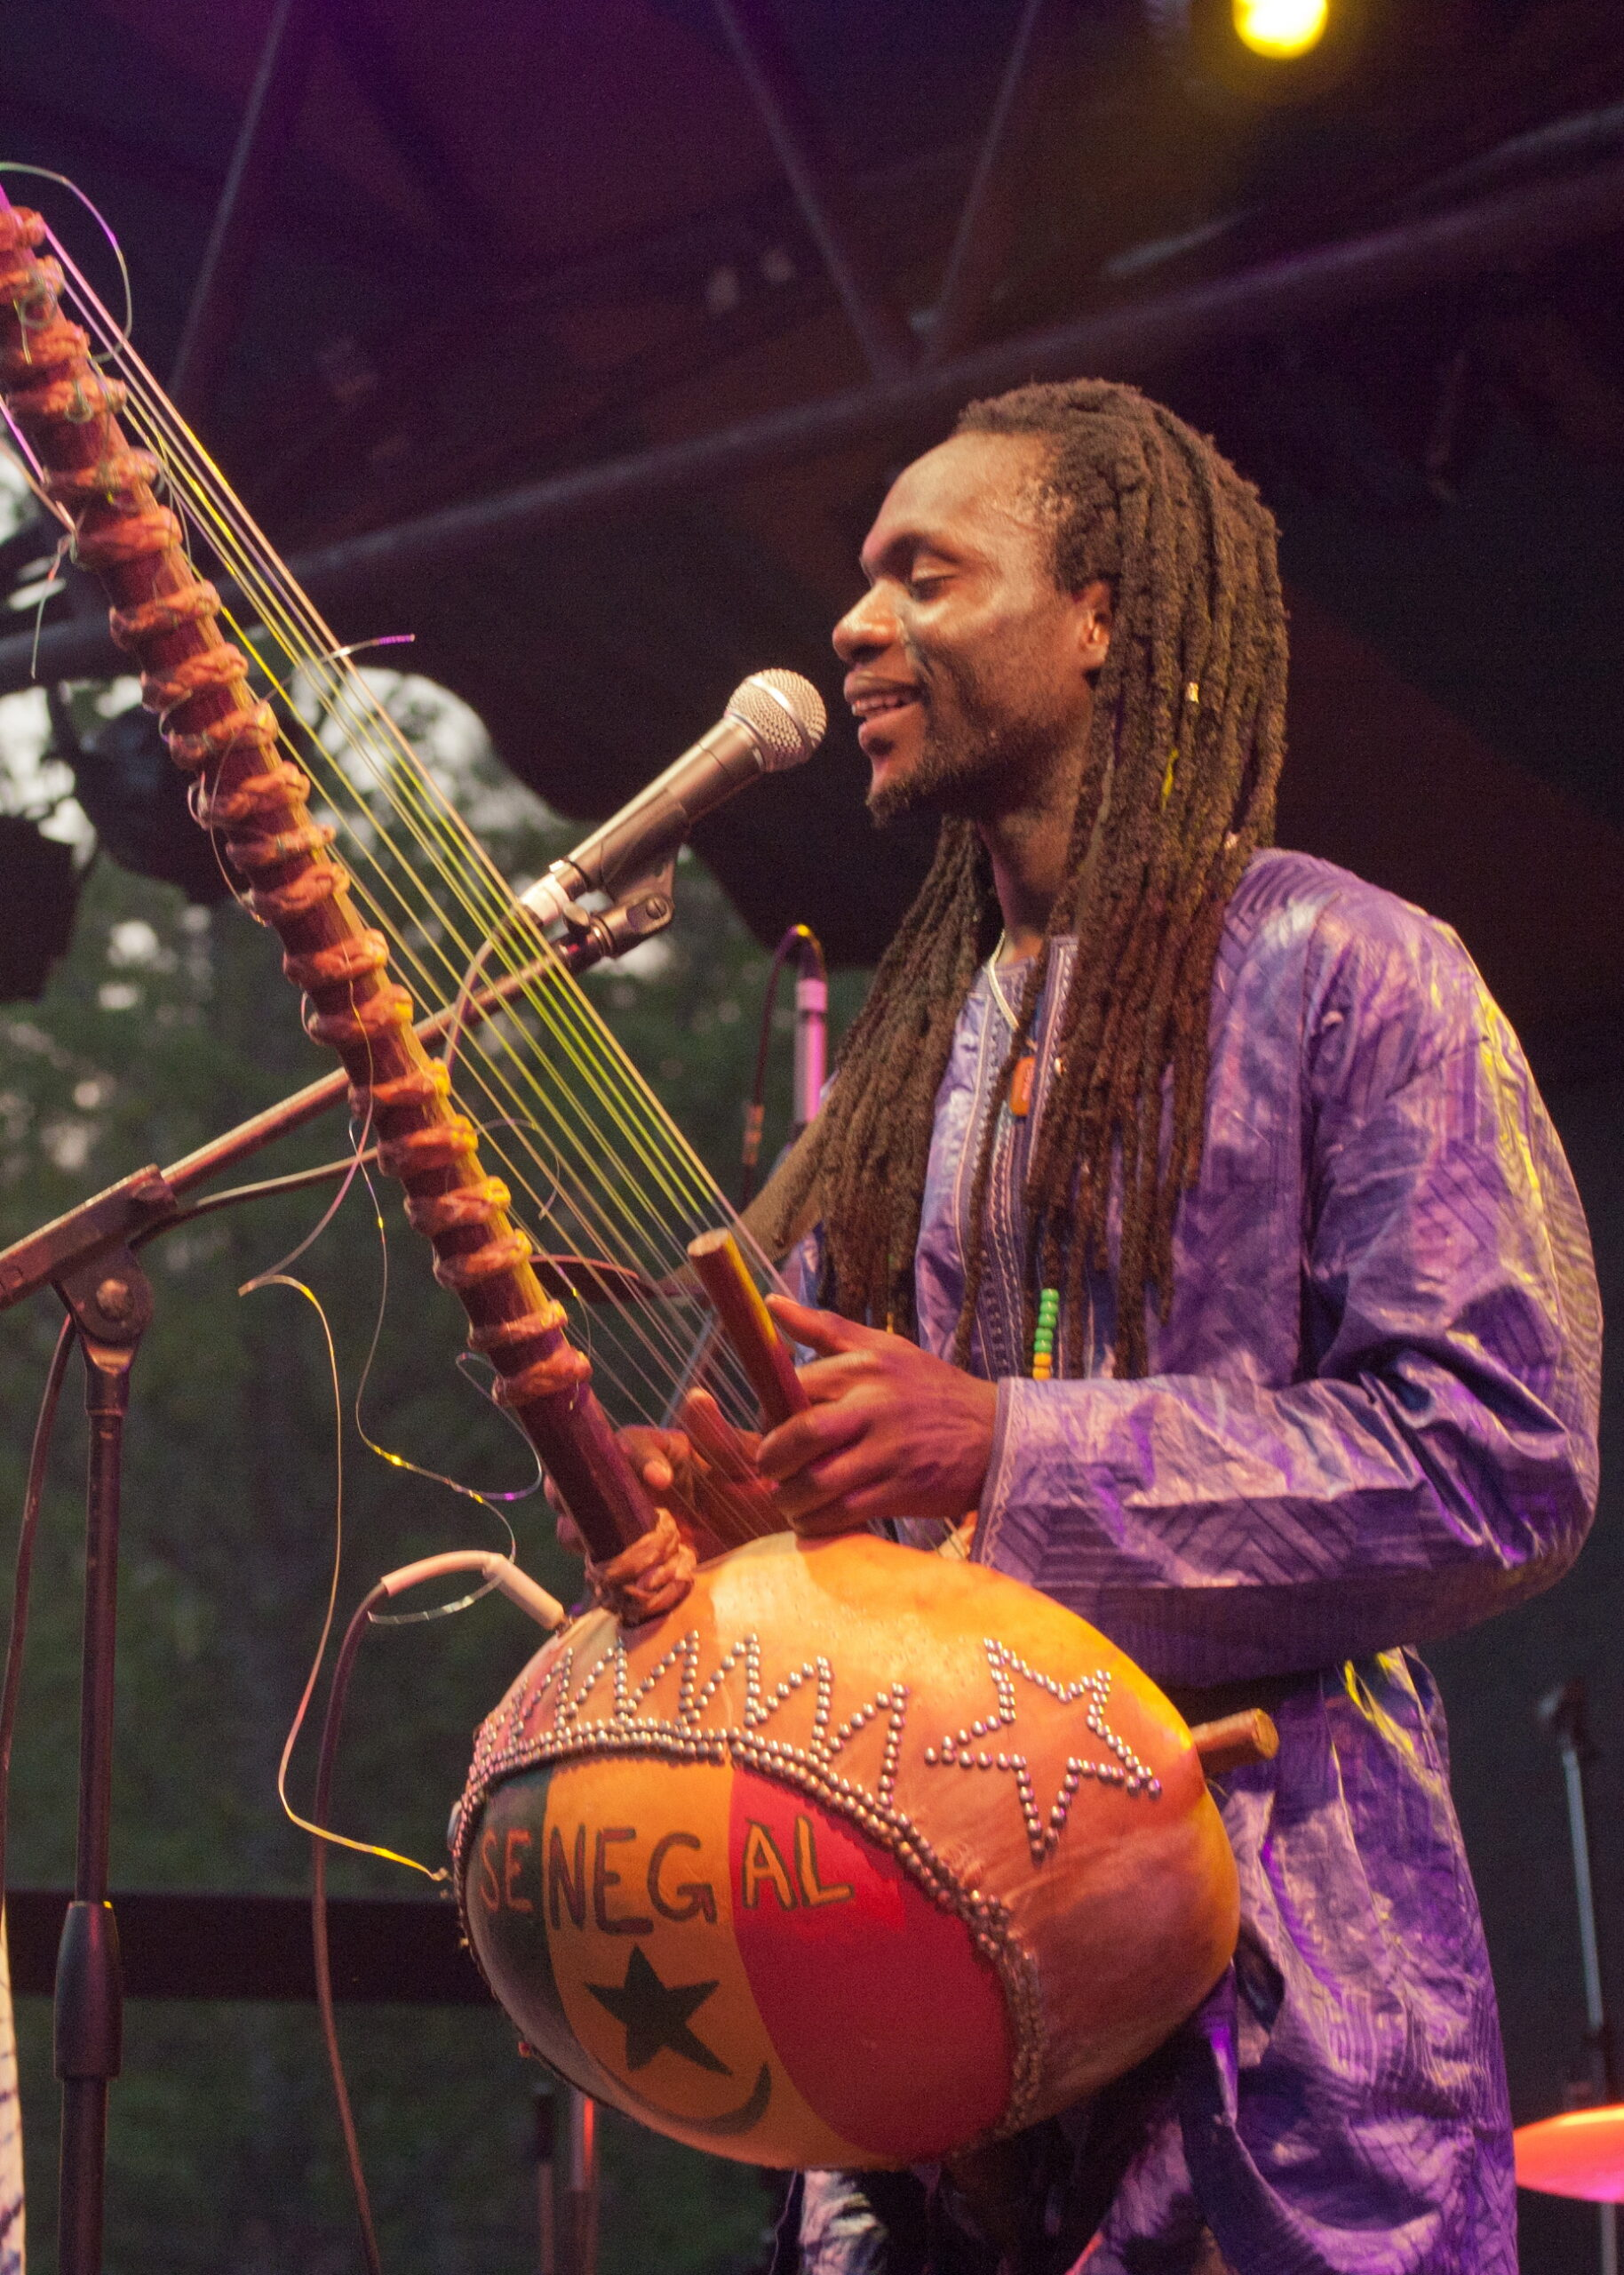 "A man plays a kora and sings into a microphone on a stage. The Koro has ""Senegal"" written on it"